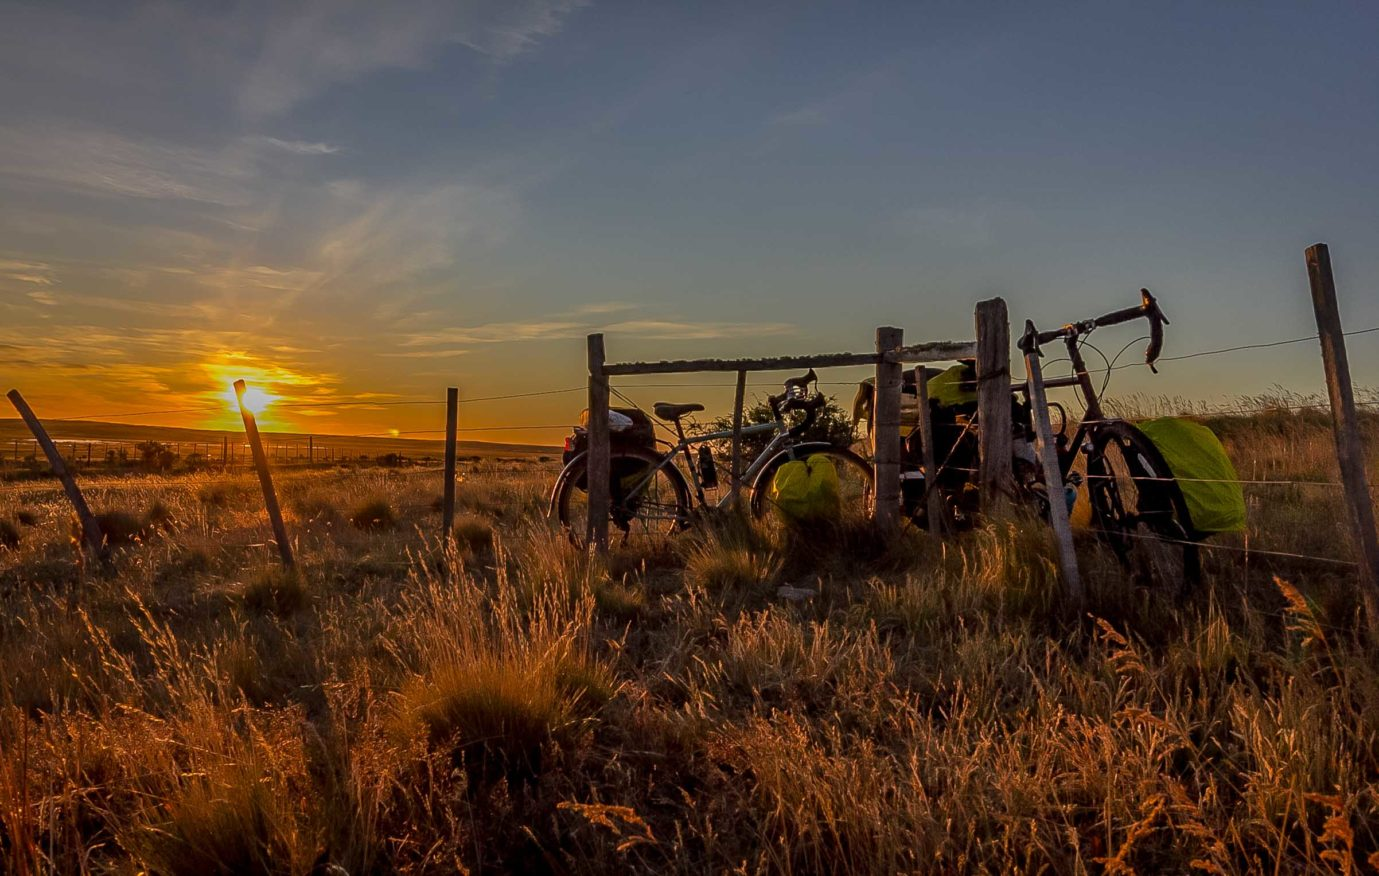 Thoughts on Cycle Touring Southern Patagonia